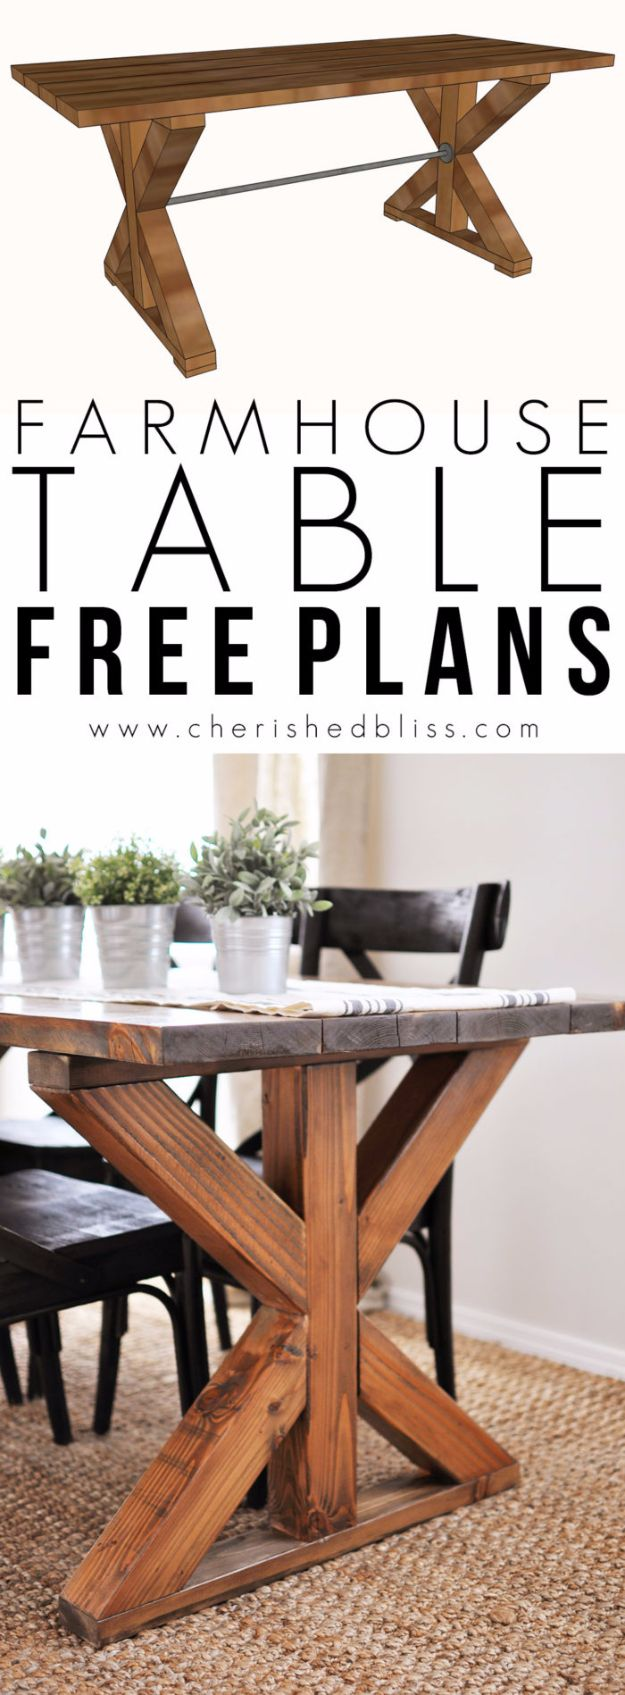 DIY Dining Room Table Projects - X Brace Farmhouse Table - Creative Do It Yourself Tables and Ideas You Can Make For Your Kitchen or Dining Area. Easy Step by Step Tutorials that Are Perfect For Those On A Budget http://diyjoy.com/diy-dining-room-table-projects